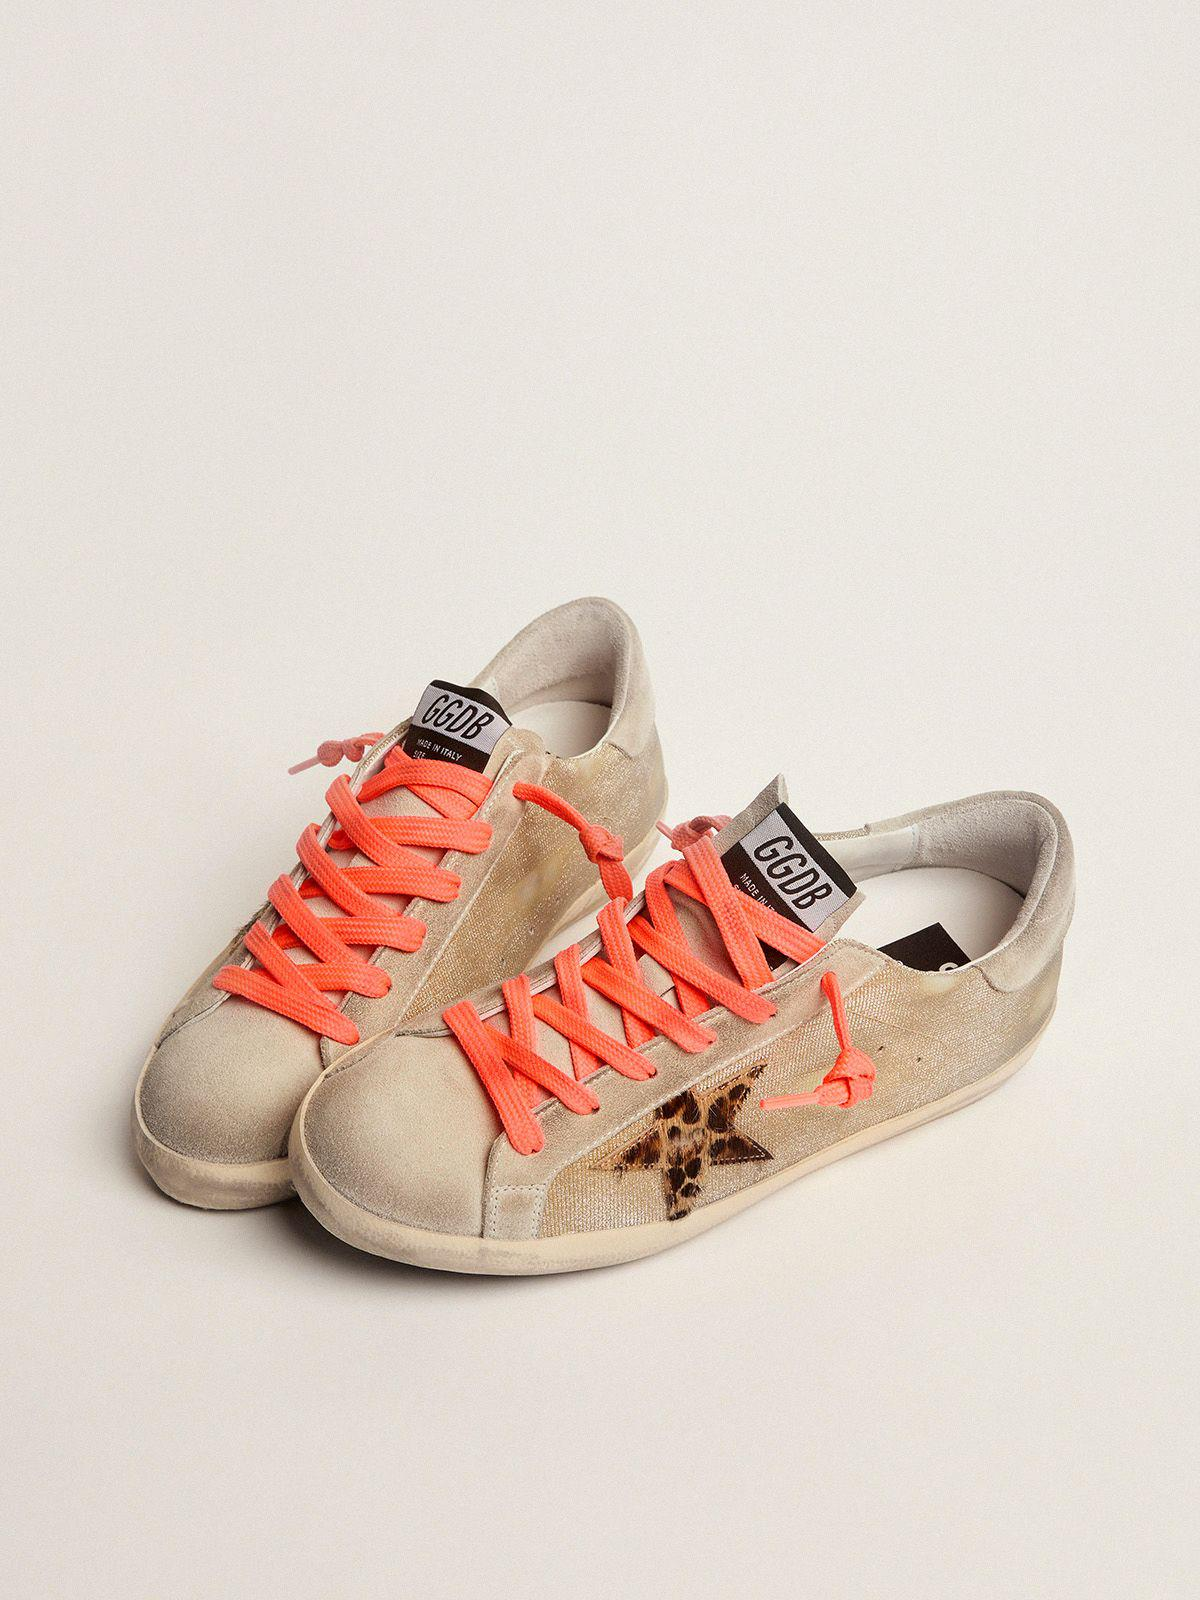 Golden Super-Star sneakers with checkered pattern and hand lettering on the foxing 1